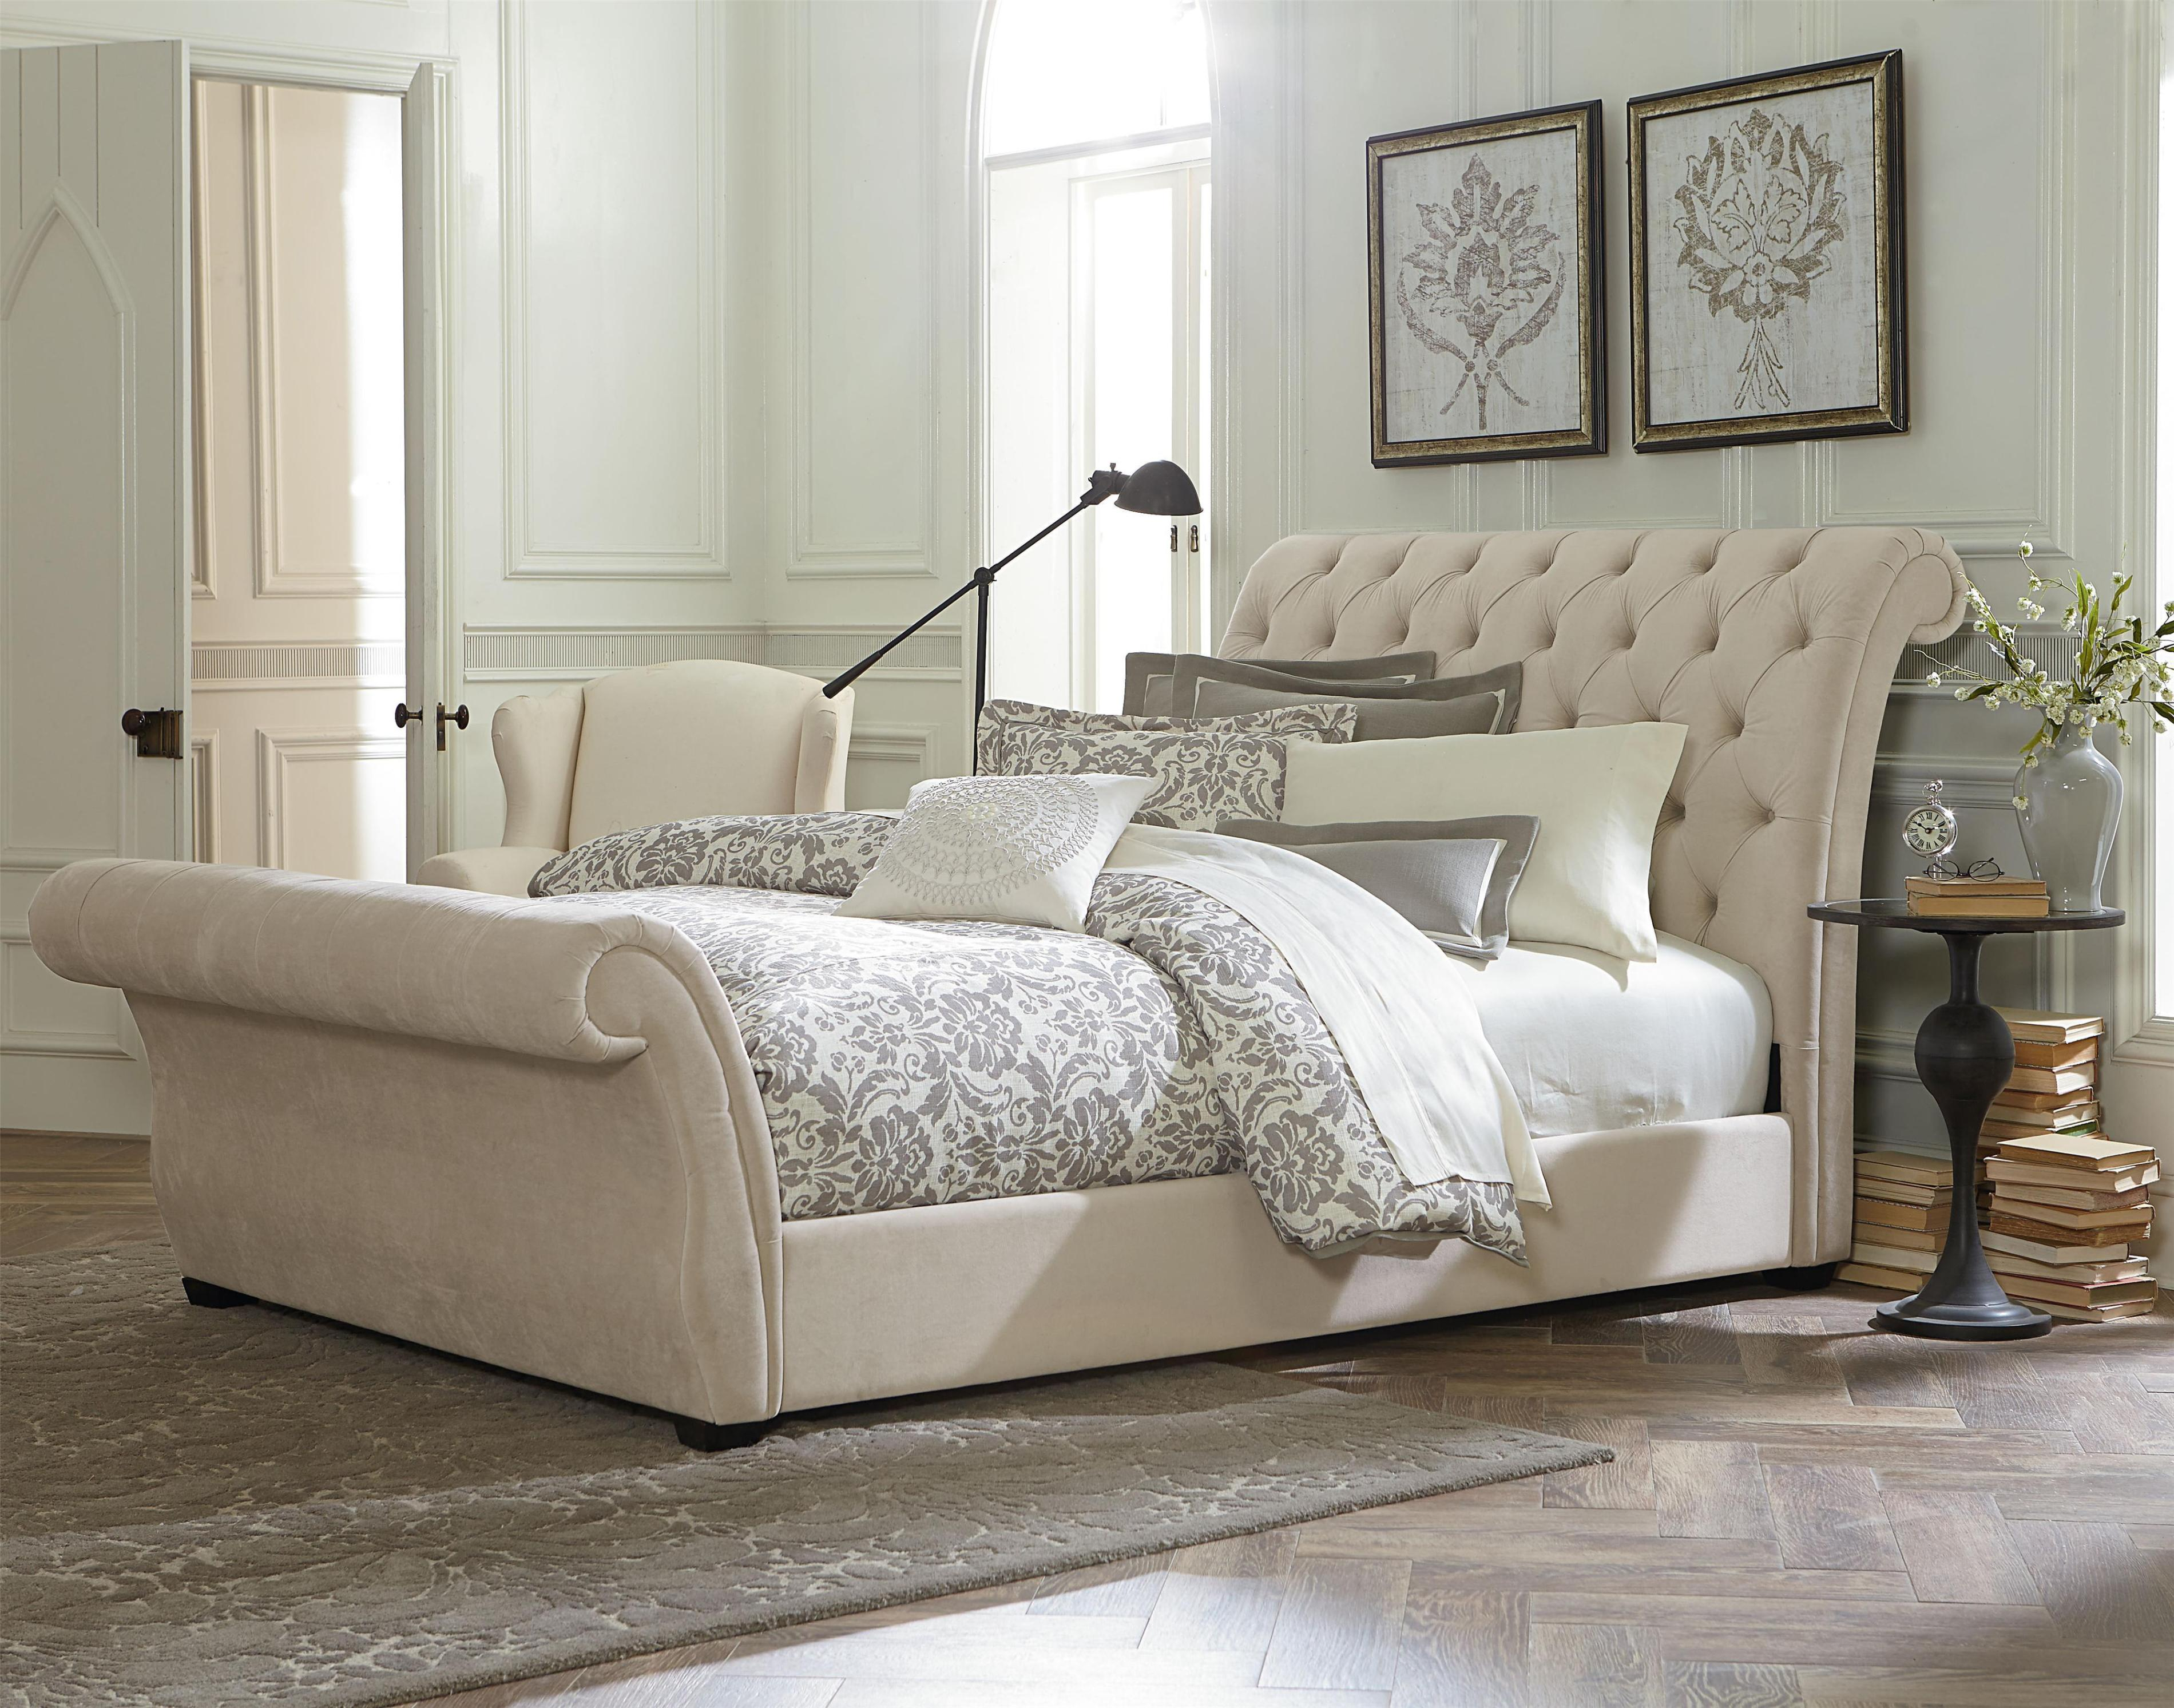 Image of: Tufted Headboard Queen Bed